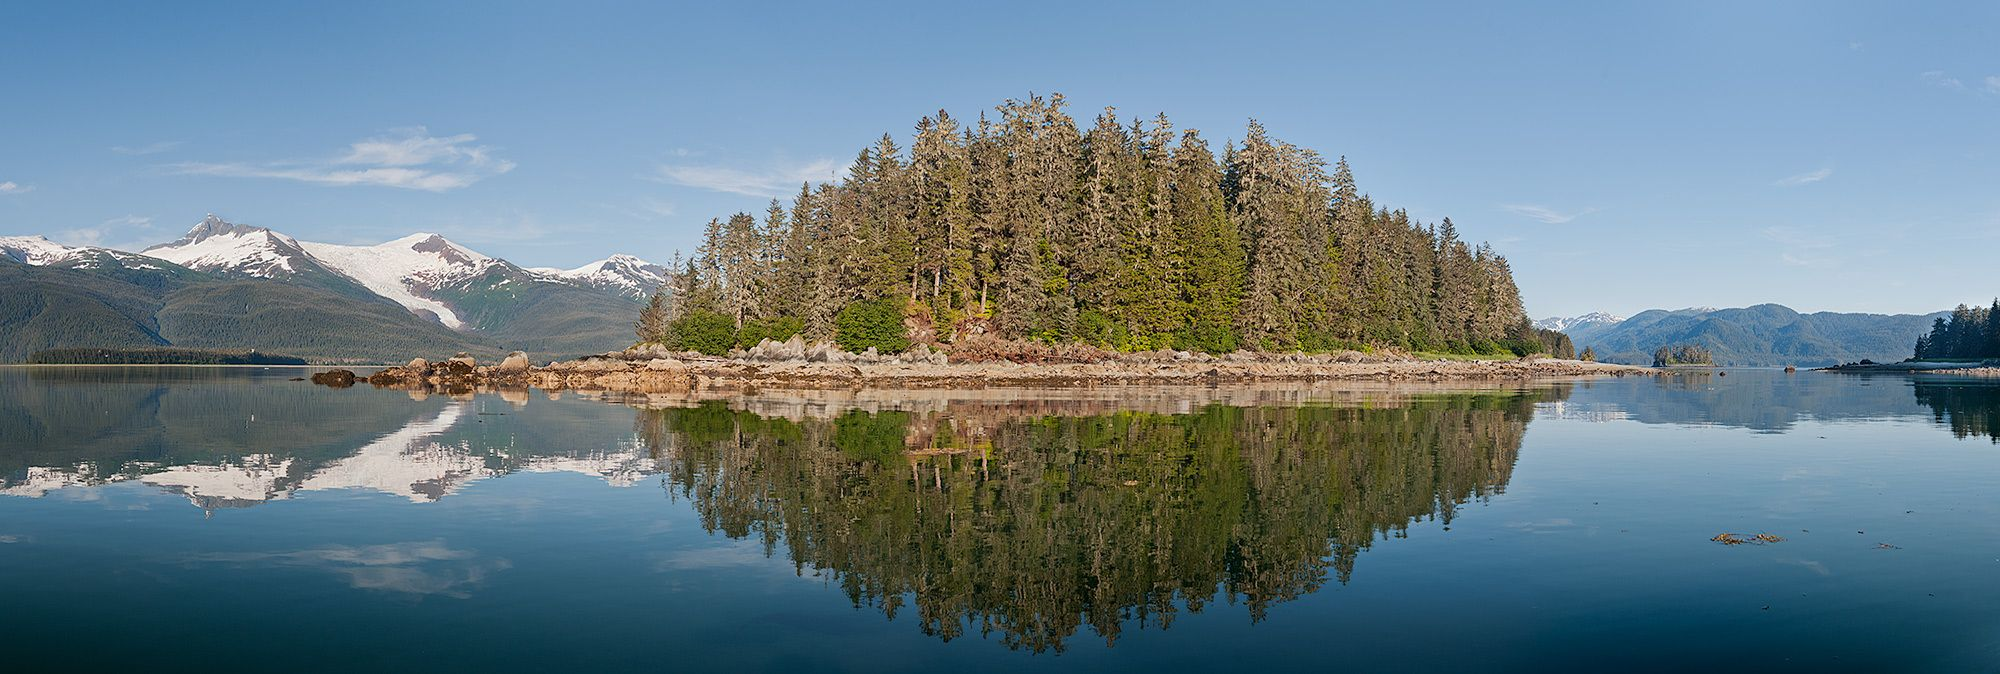 1owsley_110712_harborislandreflection2